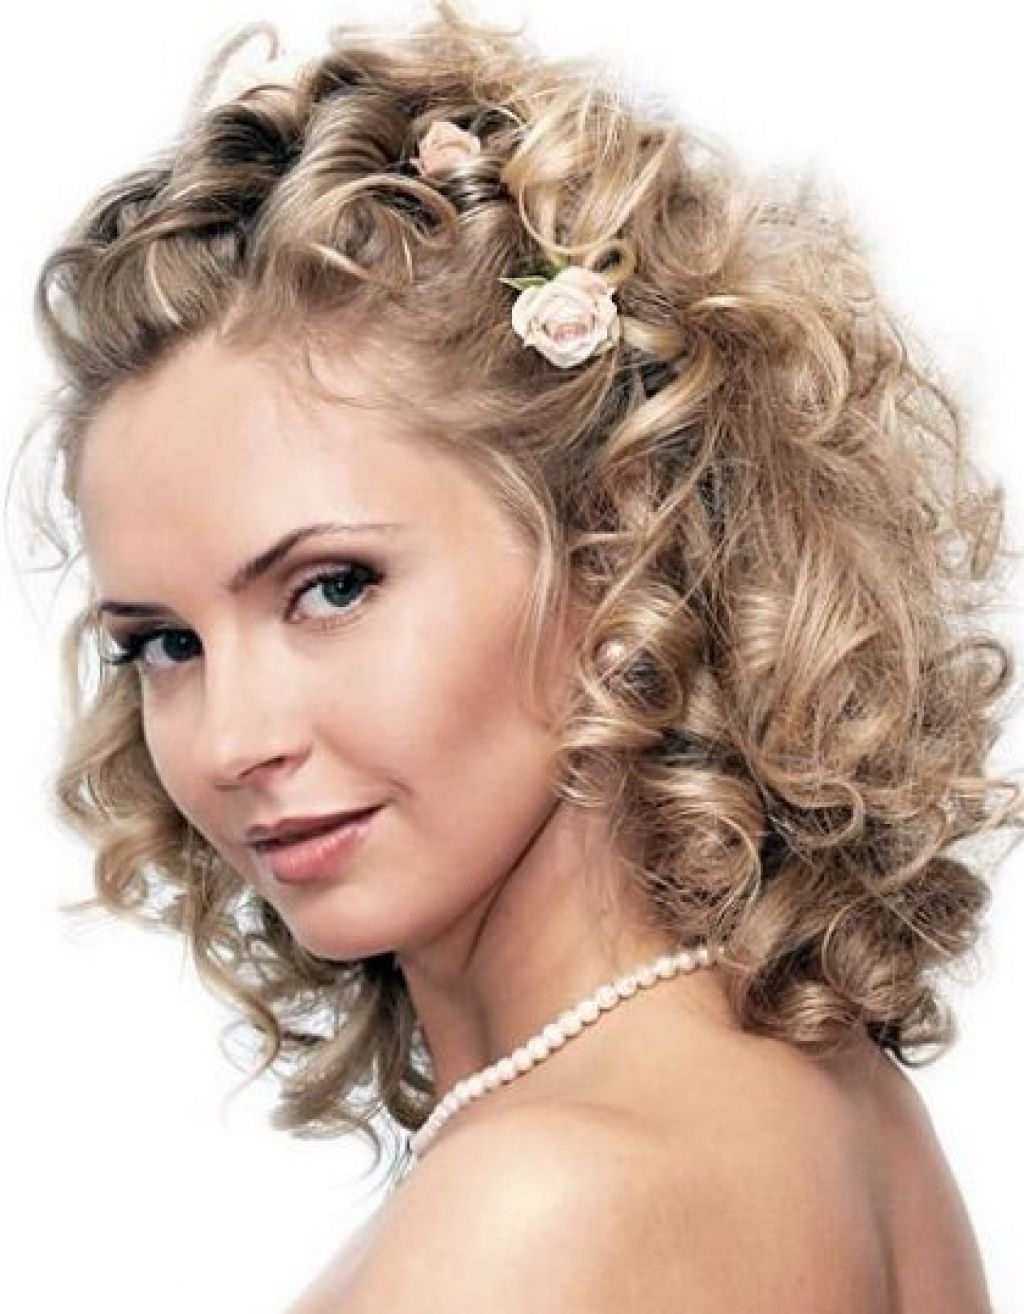 Women Curly Wedding Hairstyles For Medium Length Hair Naturally Throughout Latest Wedding Hairstyles For Medium Short Hair (View 11 of 15)